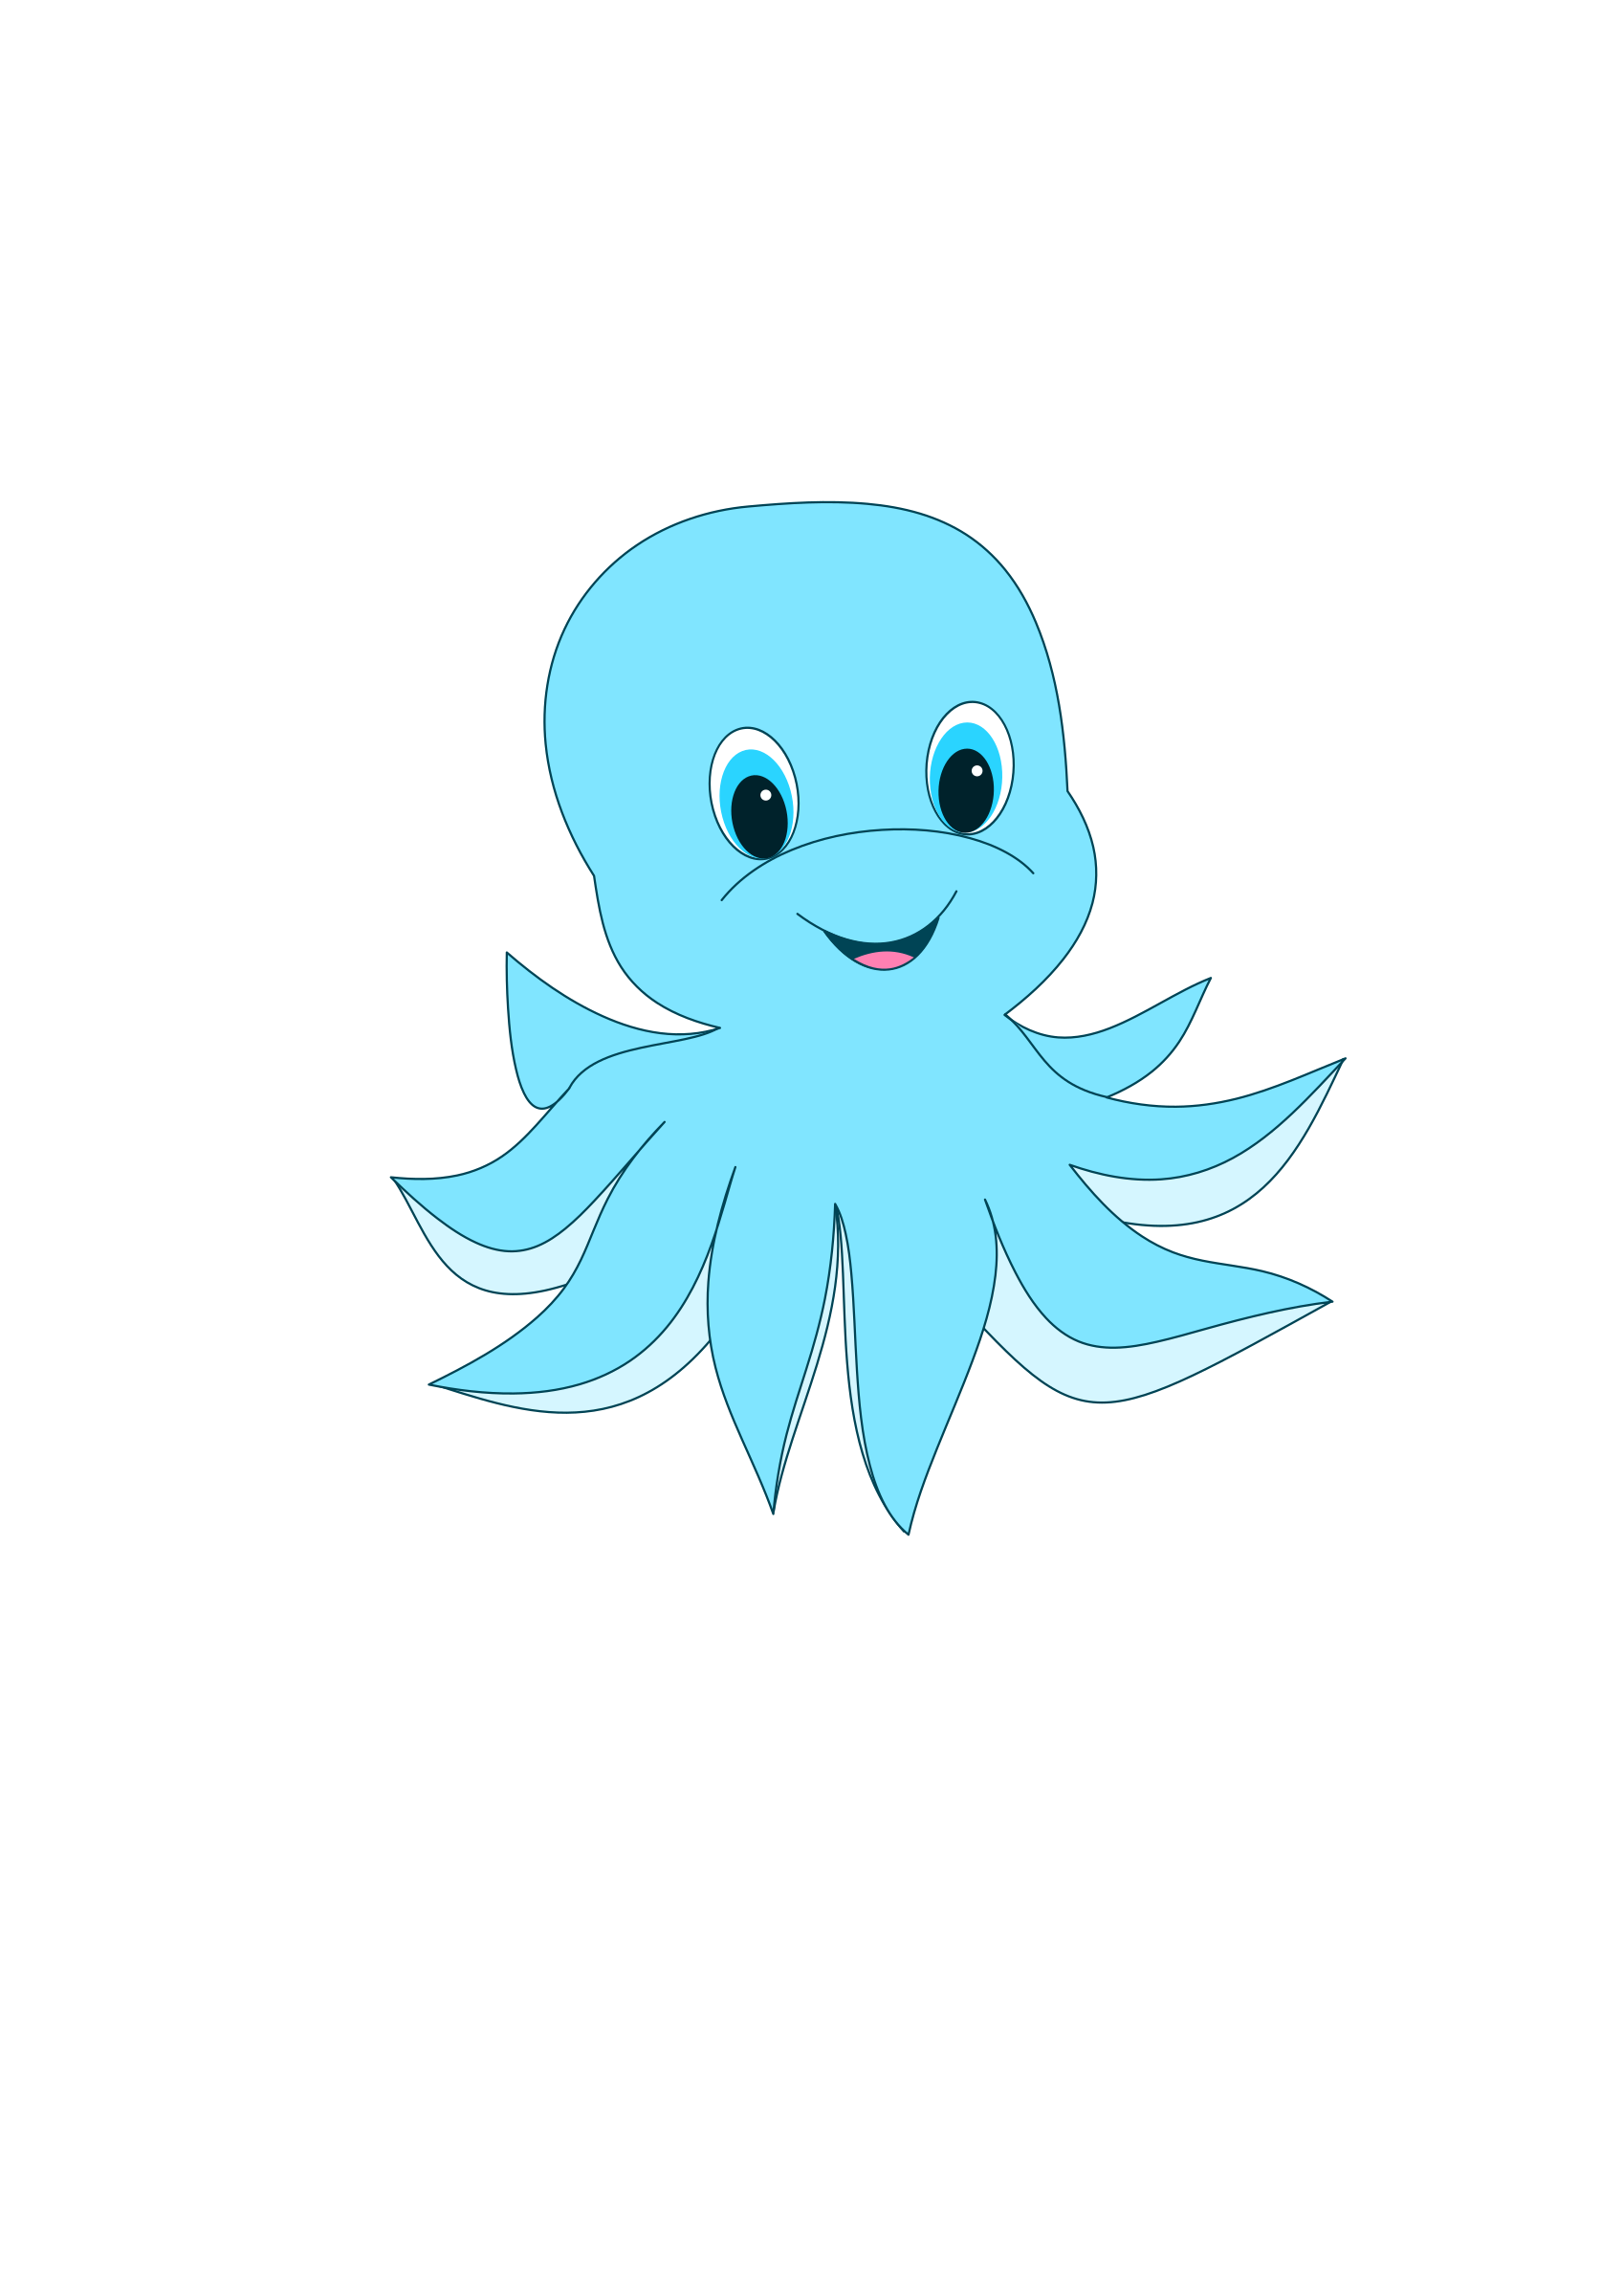 Cute Blue Octopus Vector Clipart image - Free stock photo ...